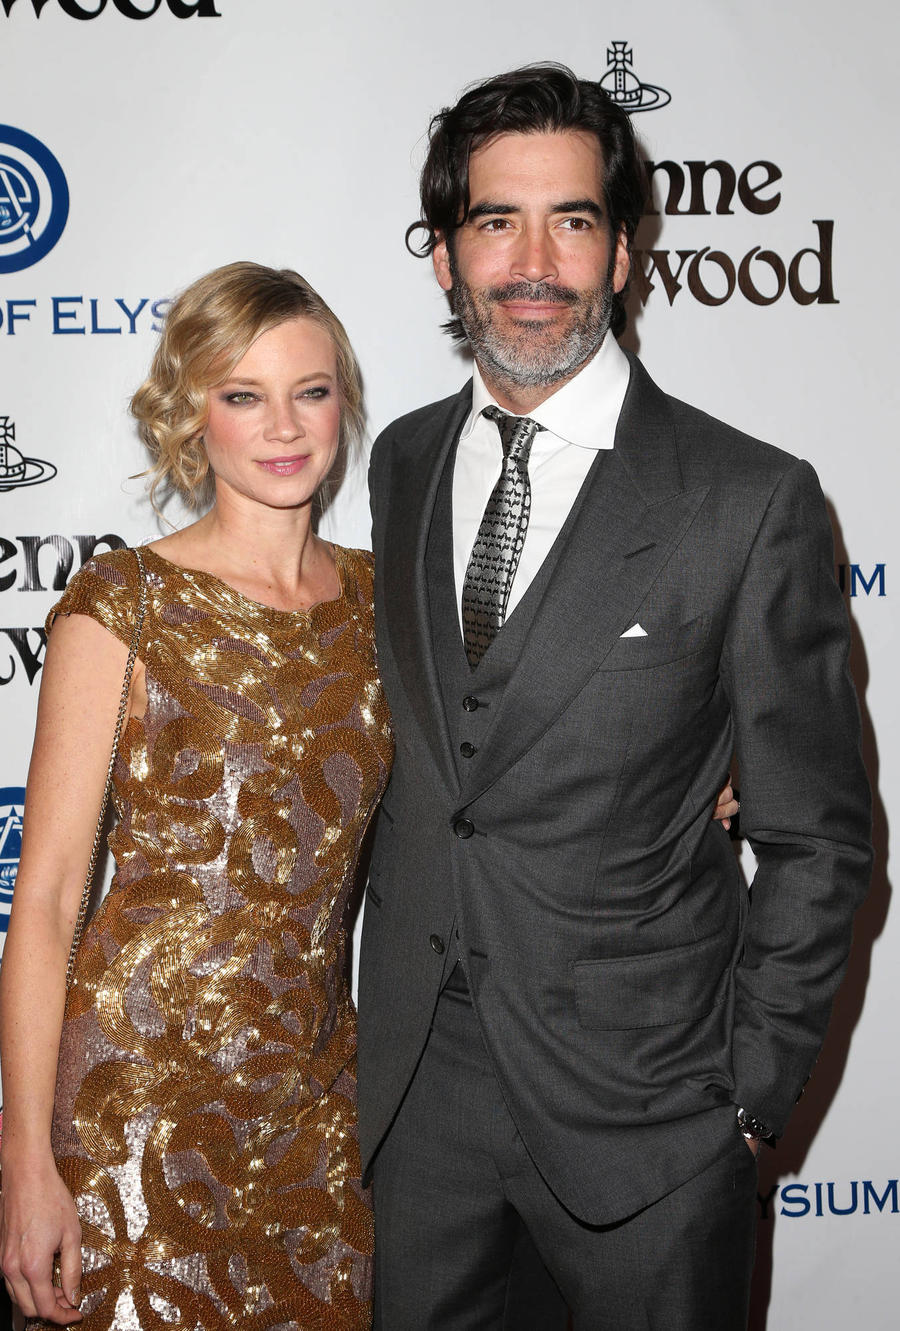 Amy Smart Used Surrogate To Realise Baby Dream